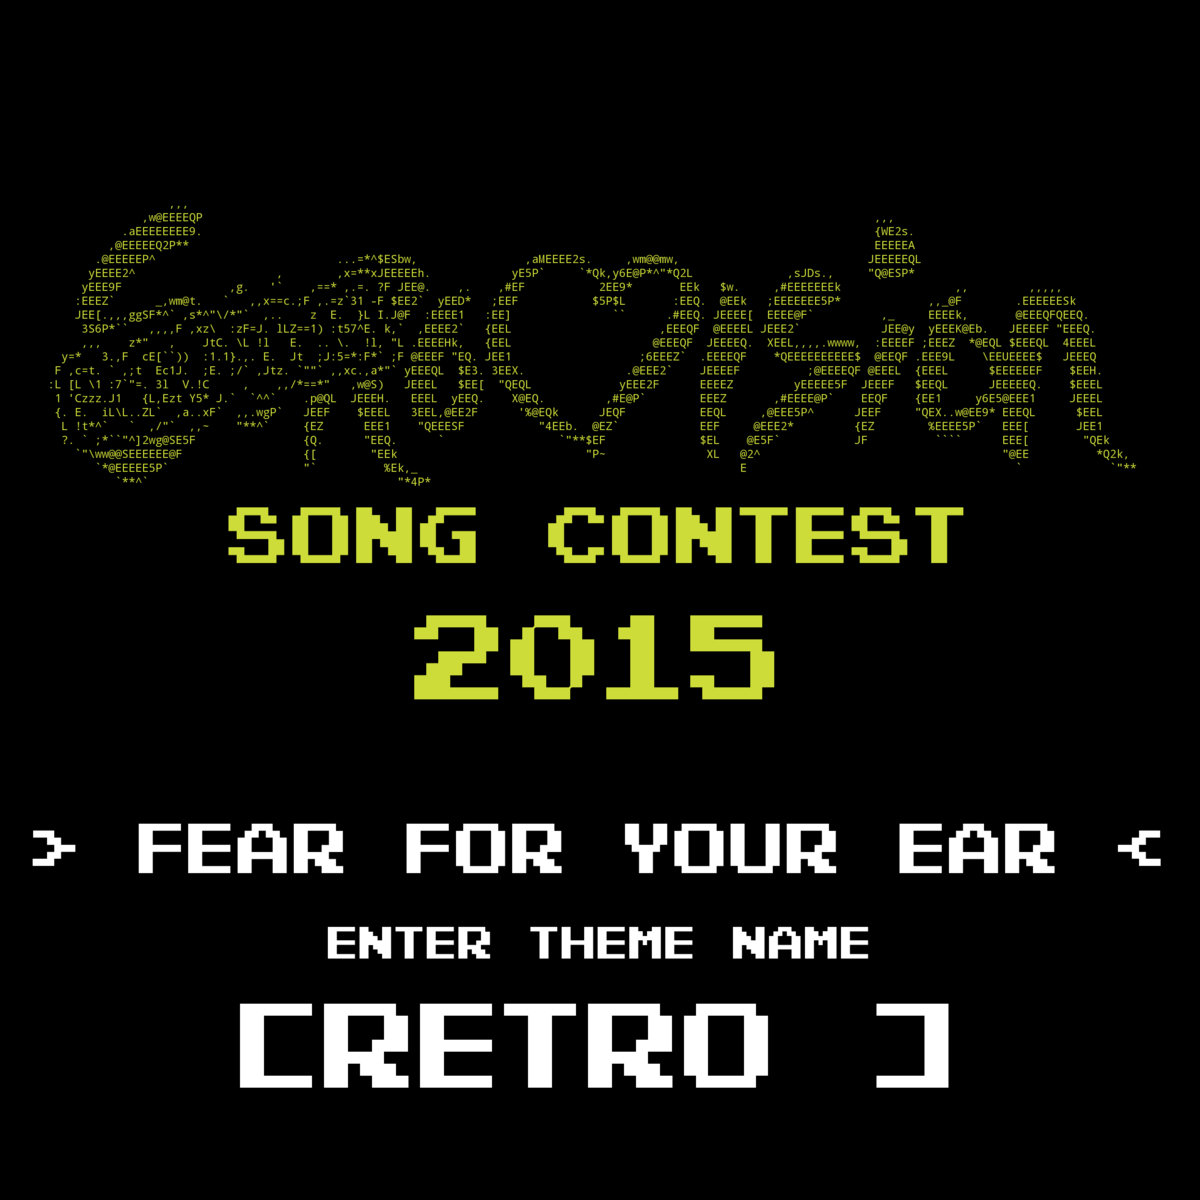 Scratchovision Song Contest 2015 (retro)